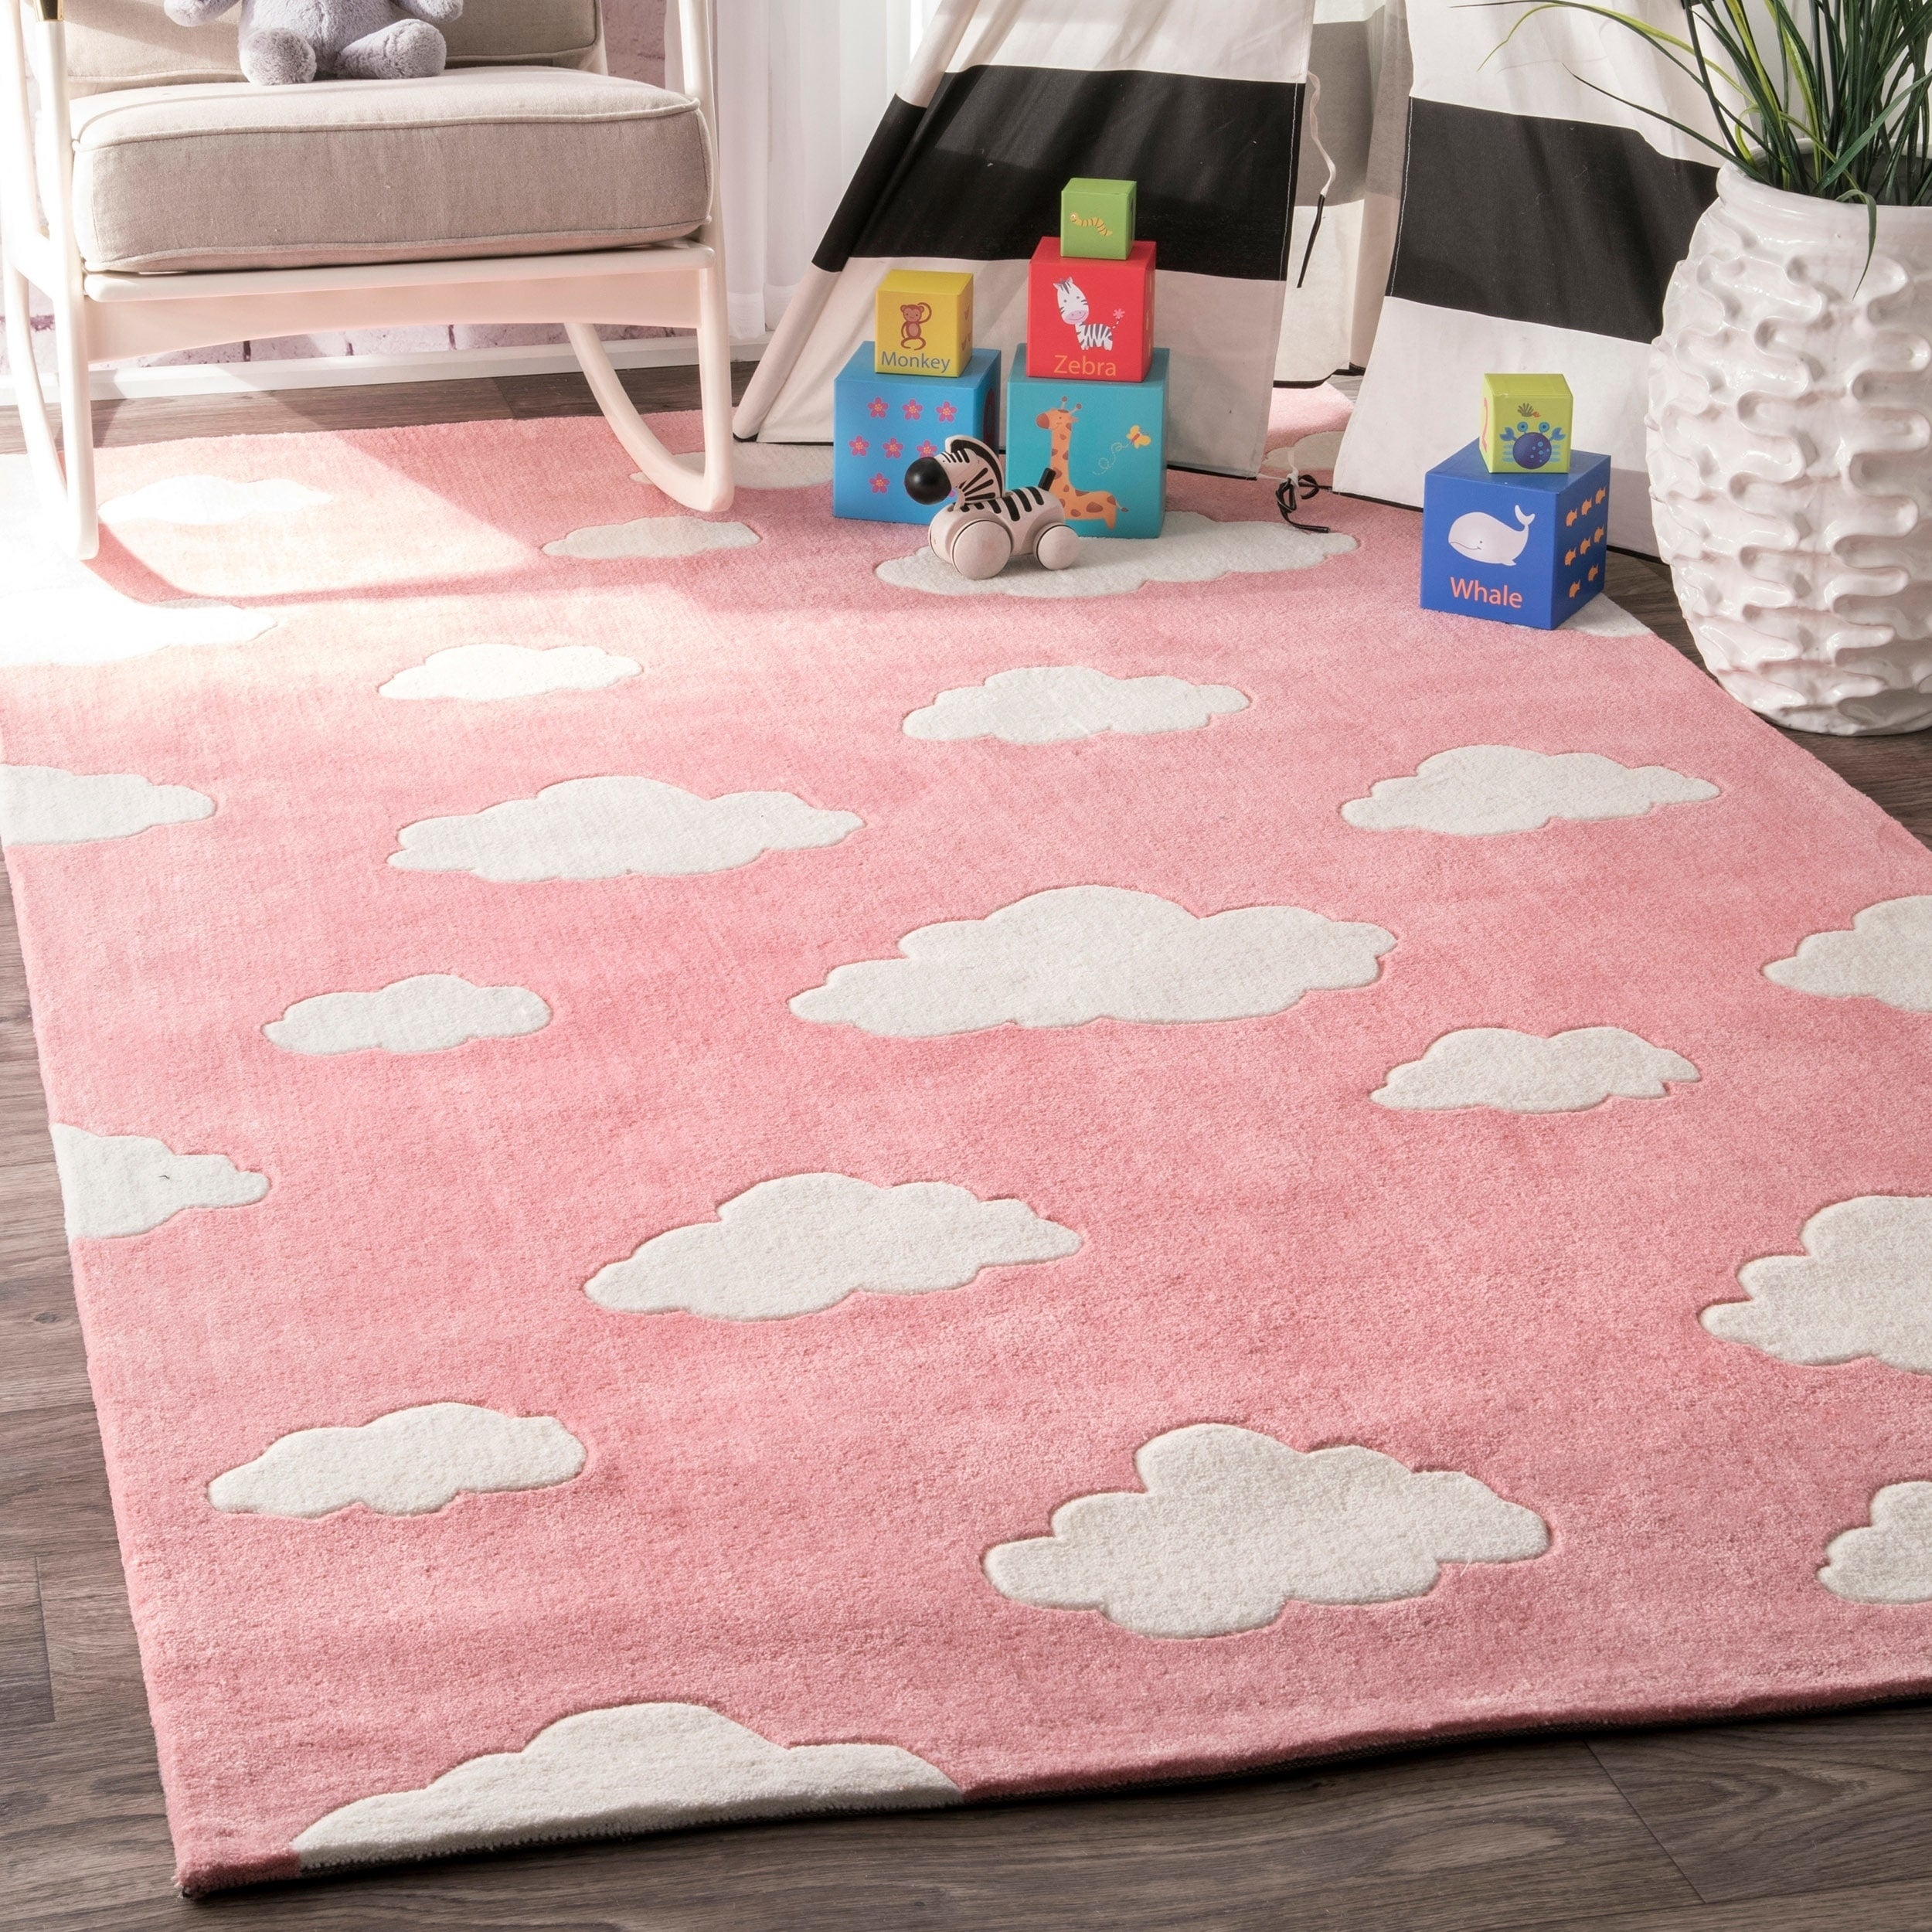 Nuloom Handmade Modern Clouds Kids Nursery Pink Rug 3 6 X 5 On Free Shipping Today 11815168